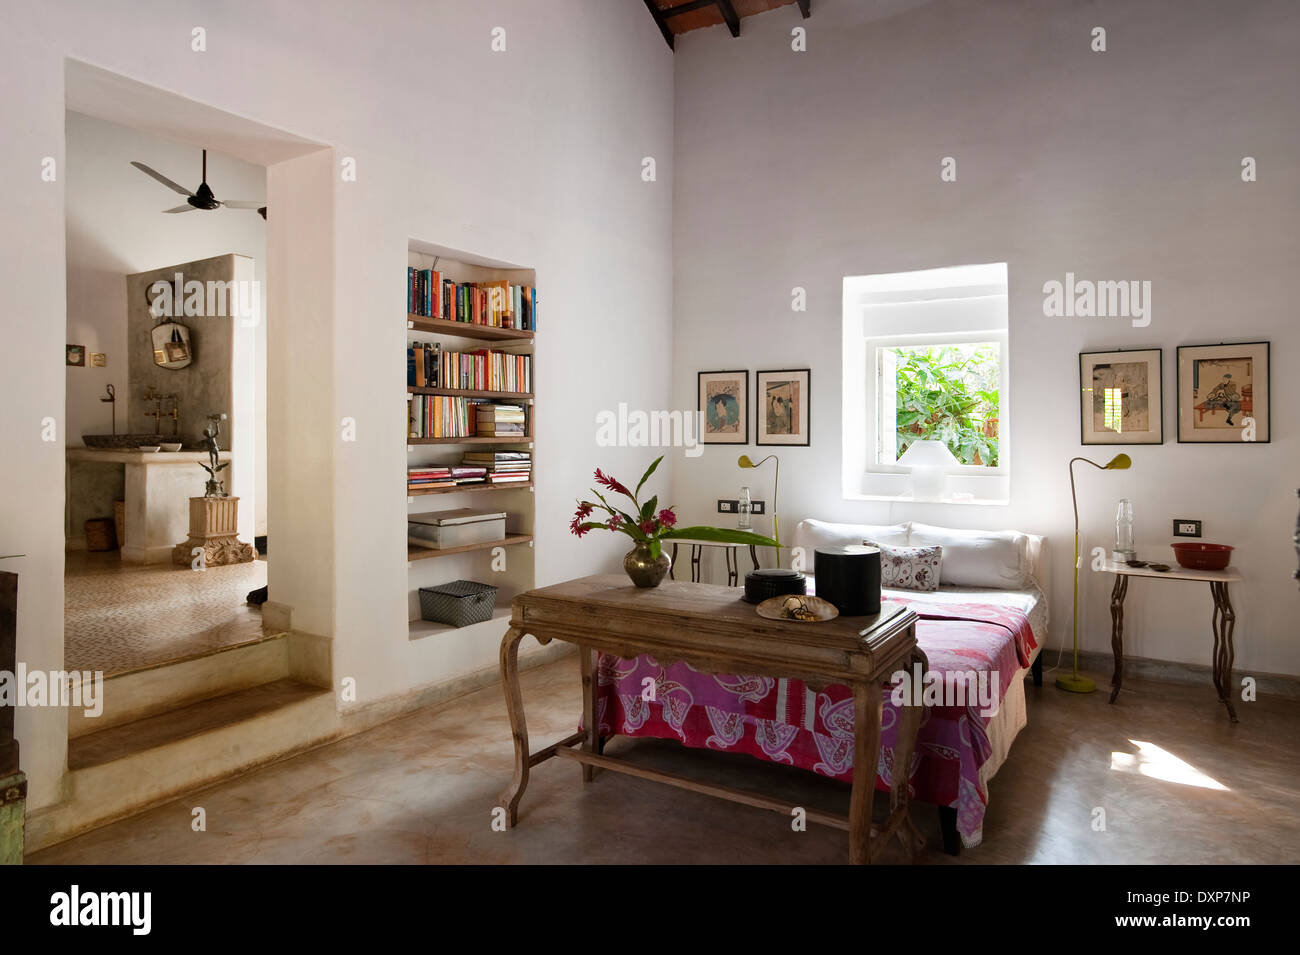 Open plan bedroom interior with recessed shelving in the Indian state of Goa - Stock Image